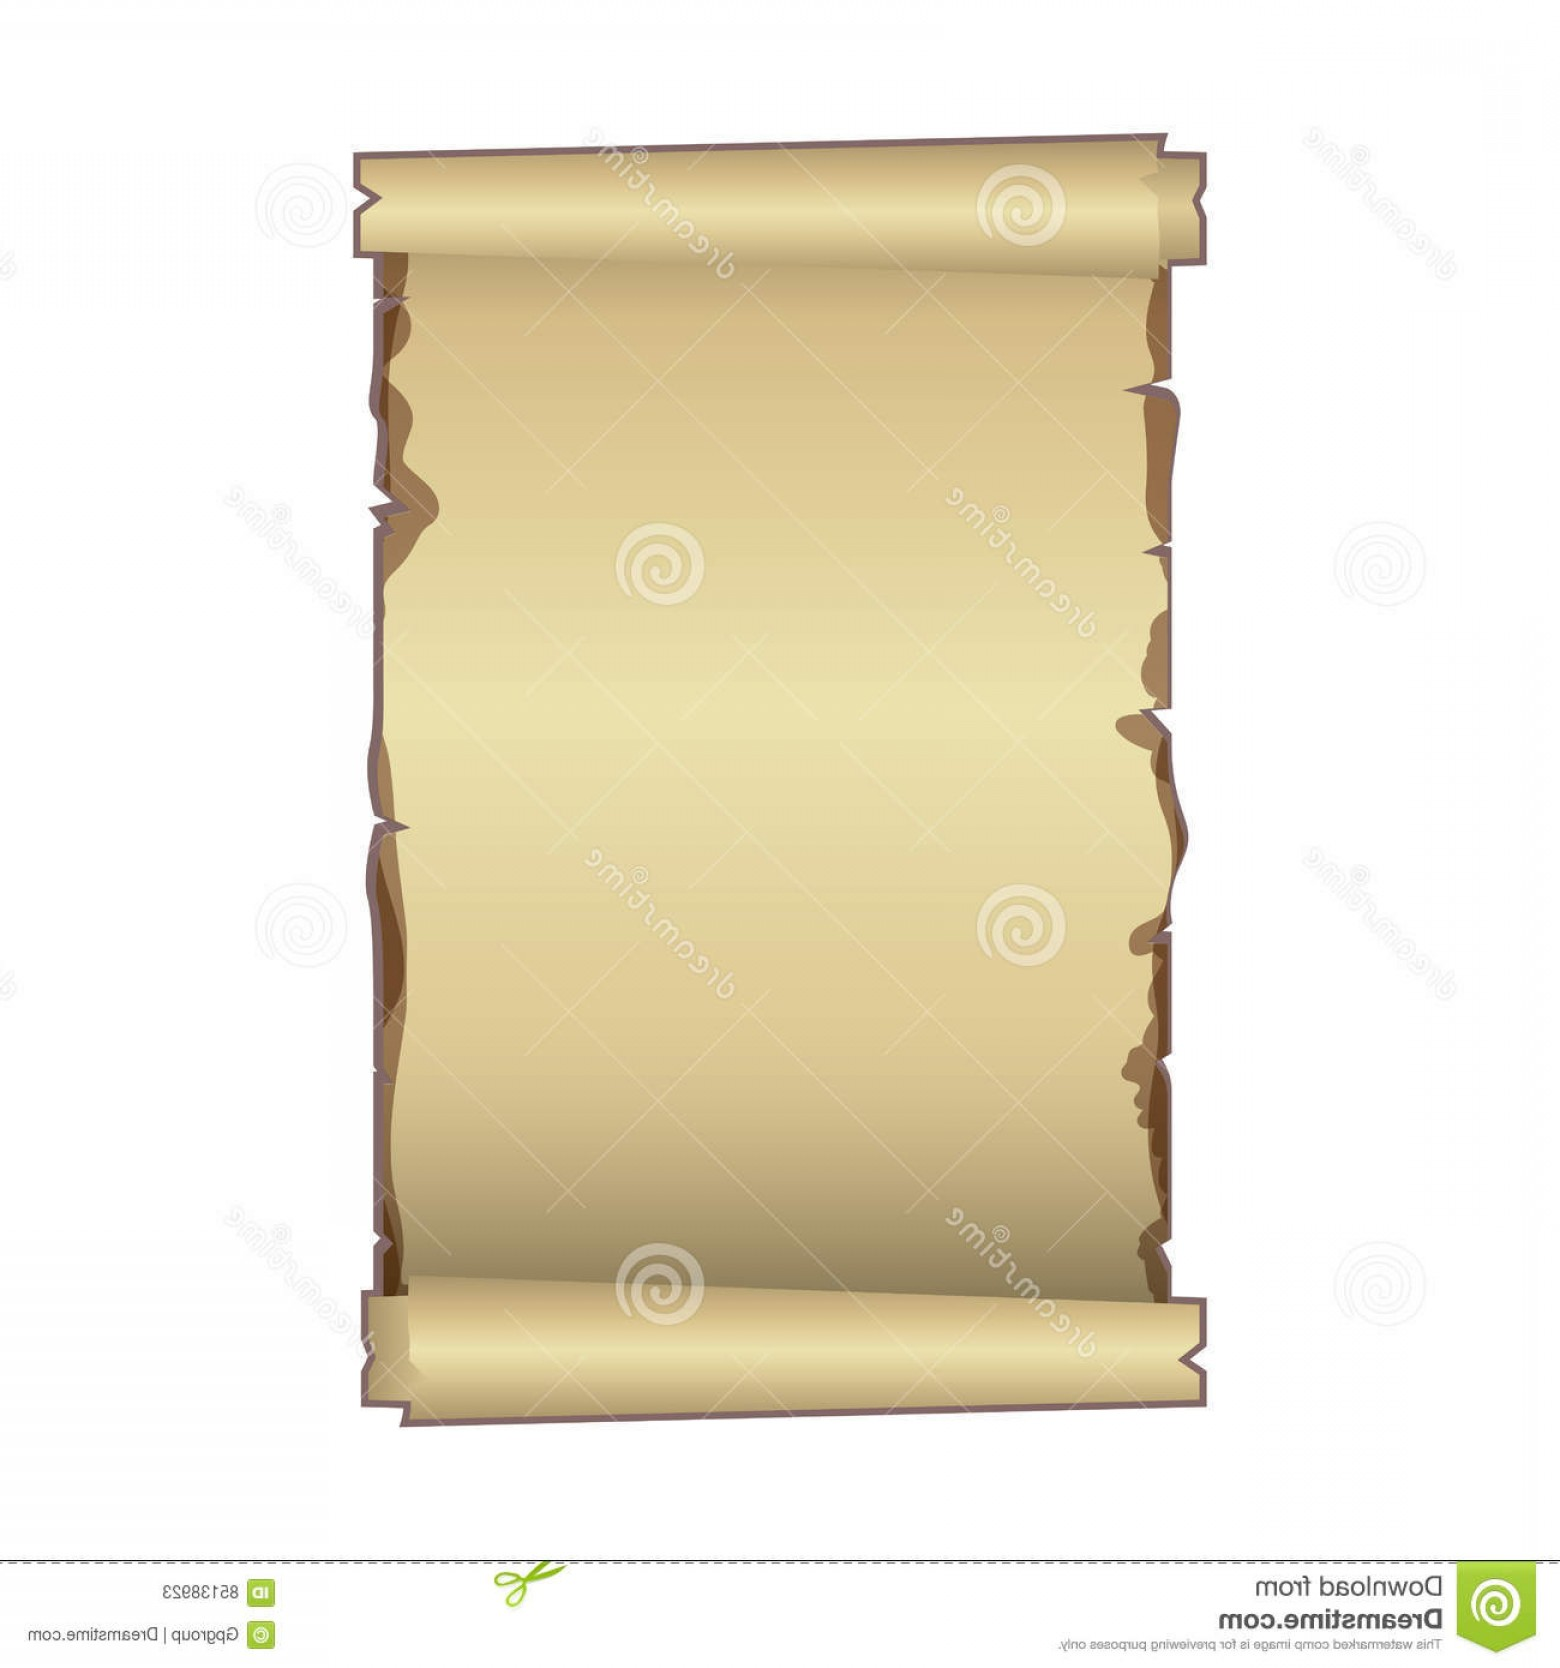 Grunge Scroll Vector Design: Stock Illustration Old Ancient Papyrus Parchment Scroll Vector Illustration Image